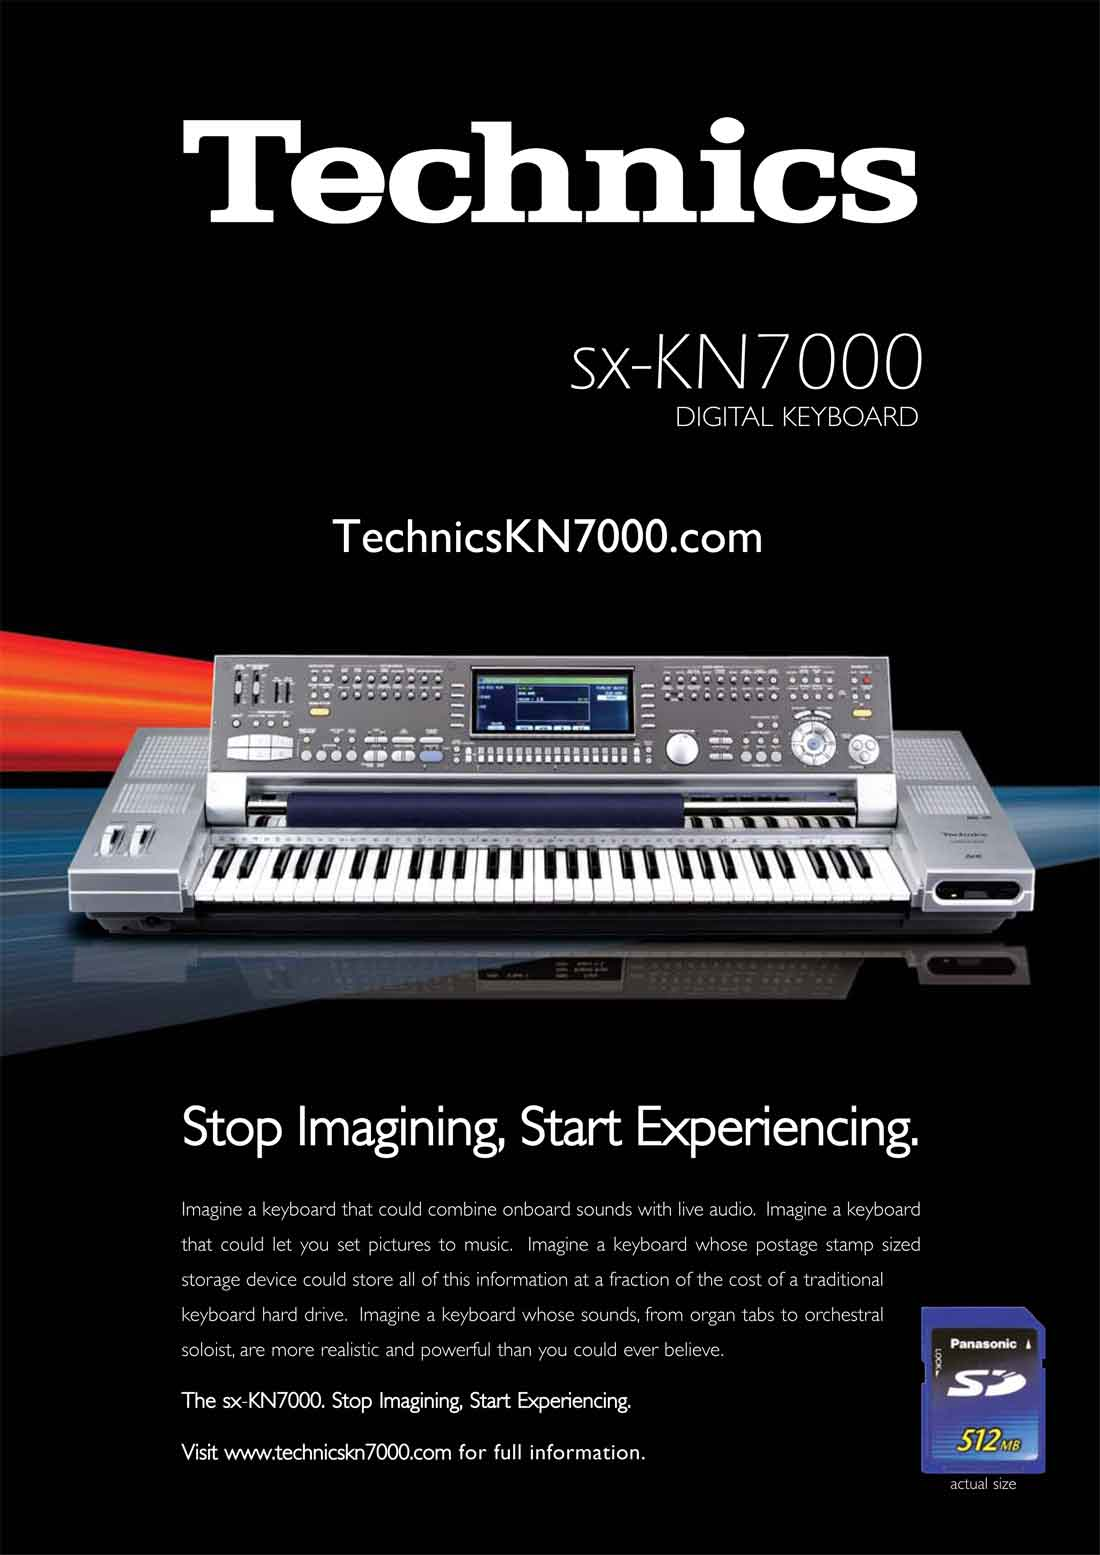 SX-KN7000 Digital Keyboard